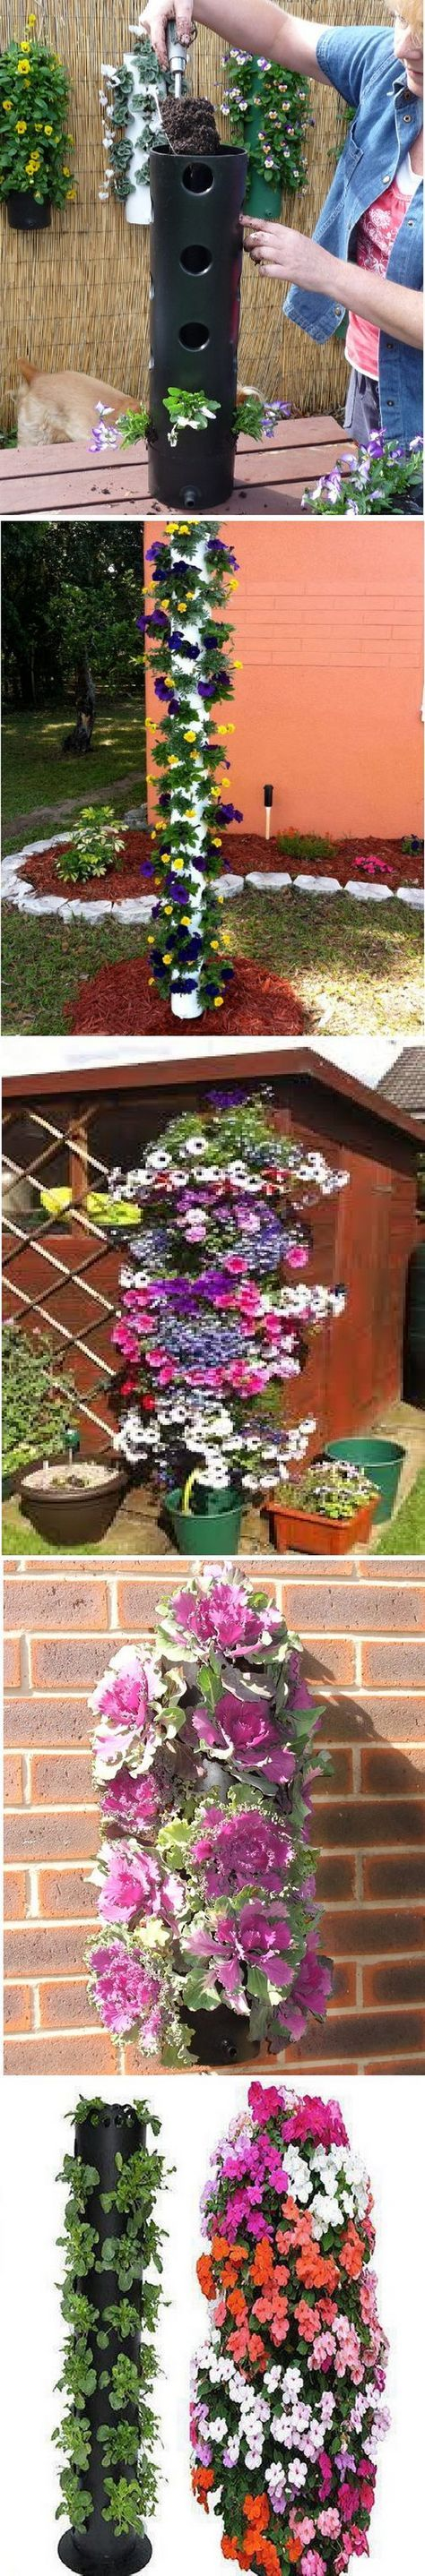 Best 25+ Vertical garden design ideas only on Pinterest | Vertical ...